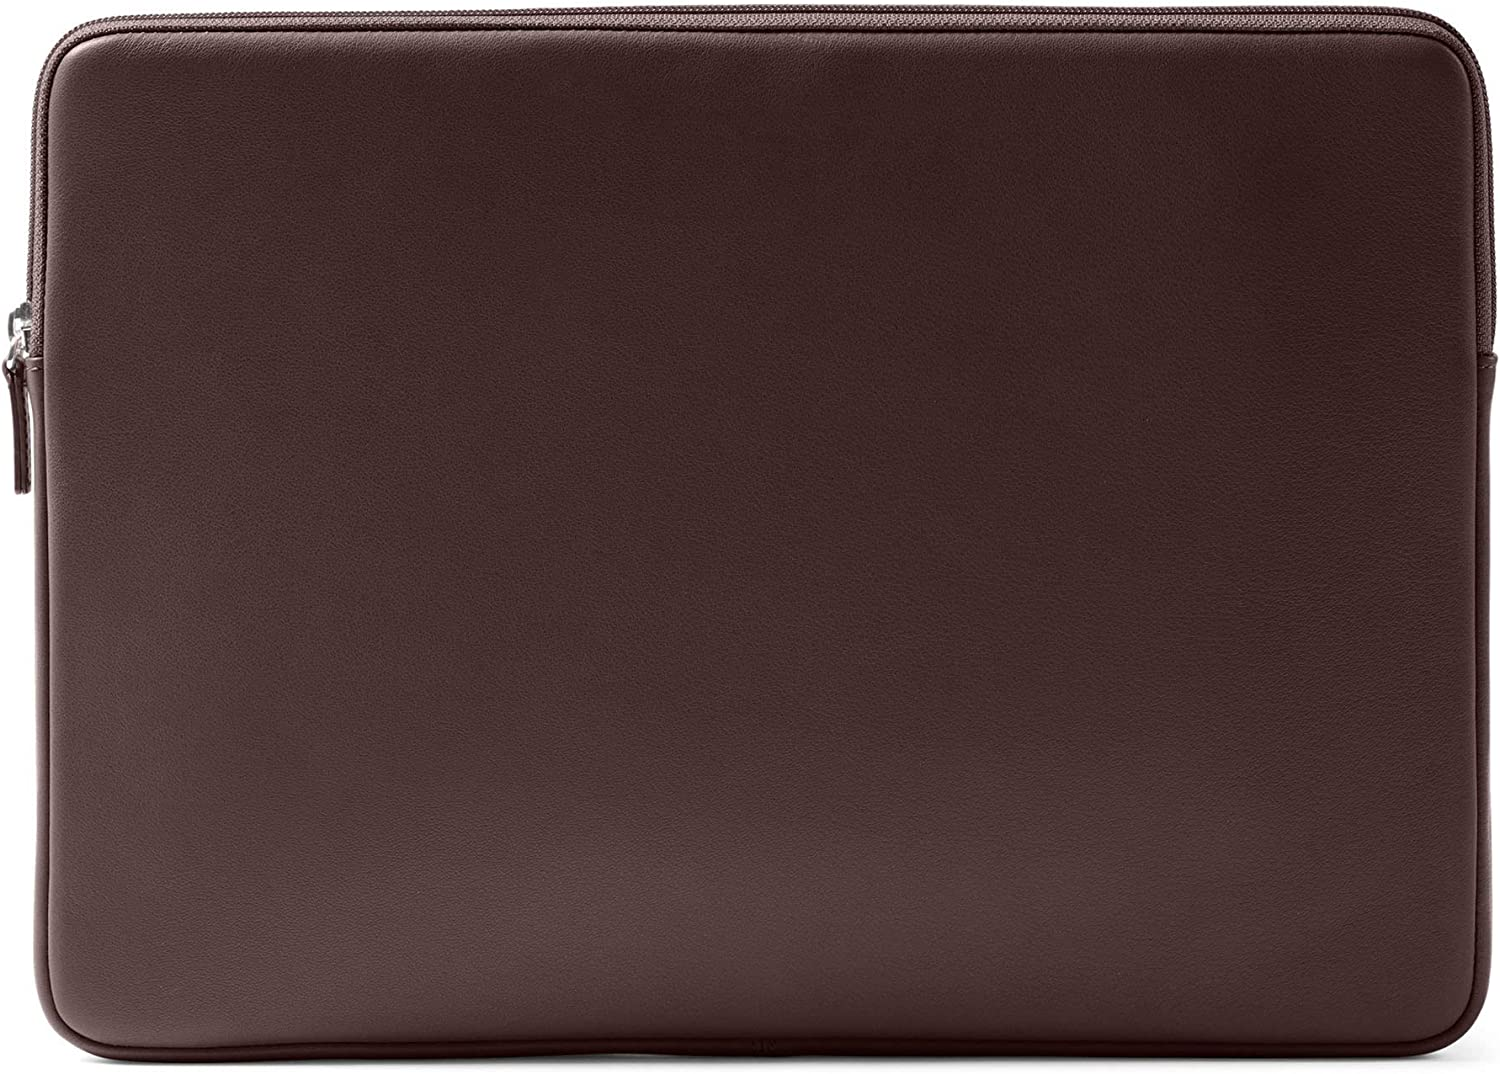 Leatherology Brown Laptop Sleeve Case Compatible with 15 Inch MacBook Pro